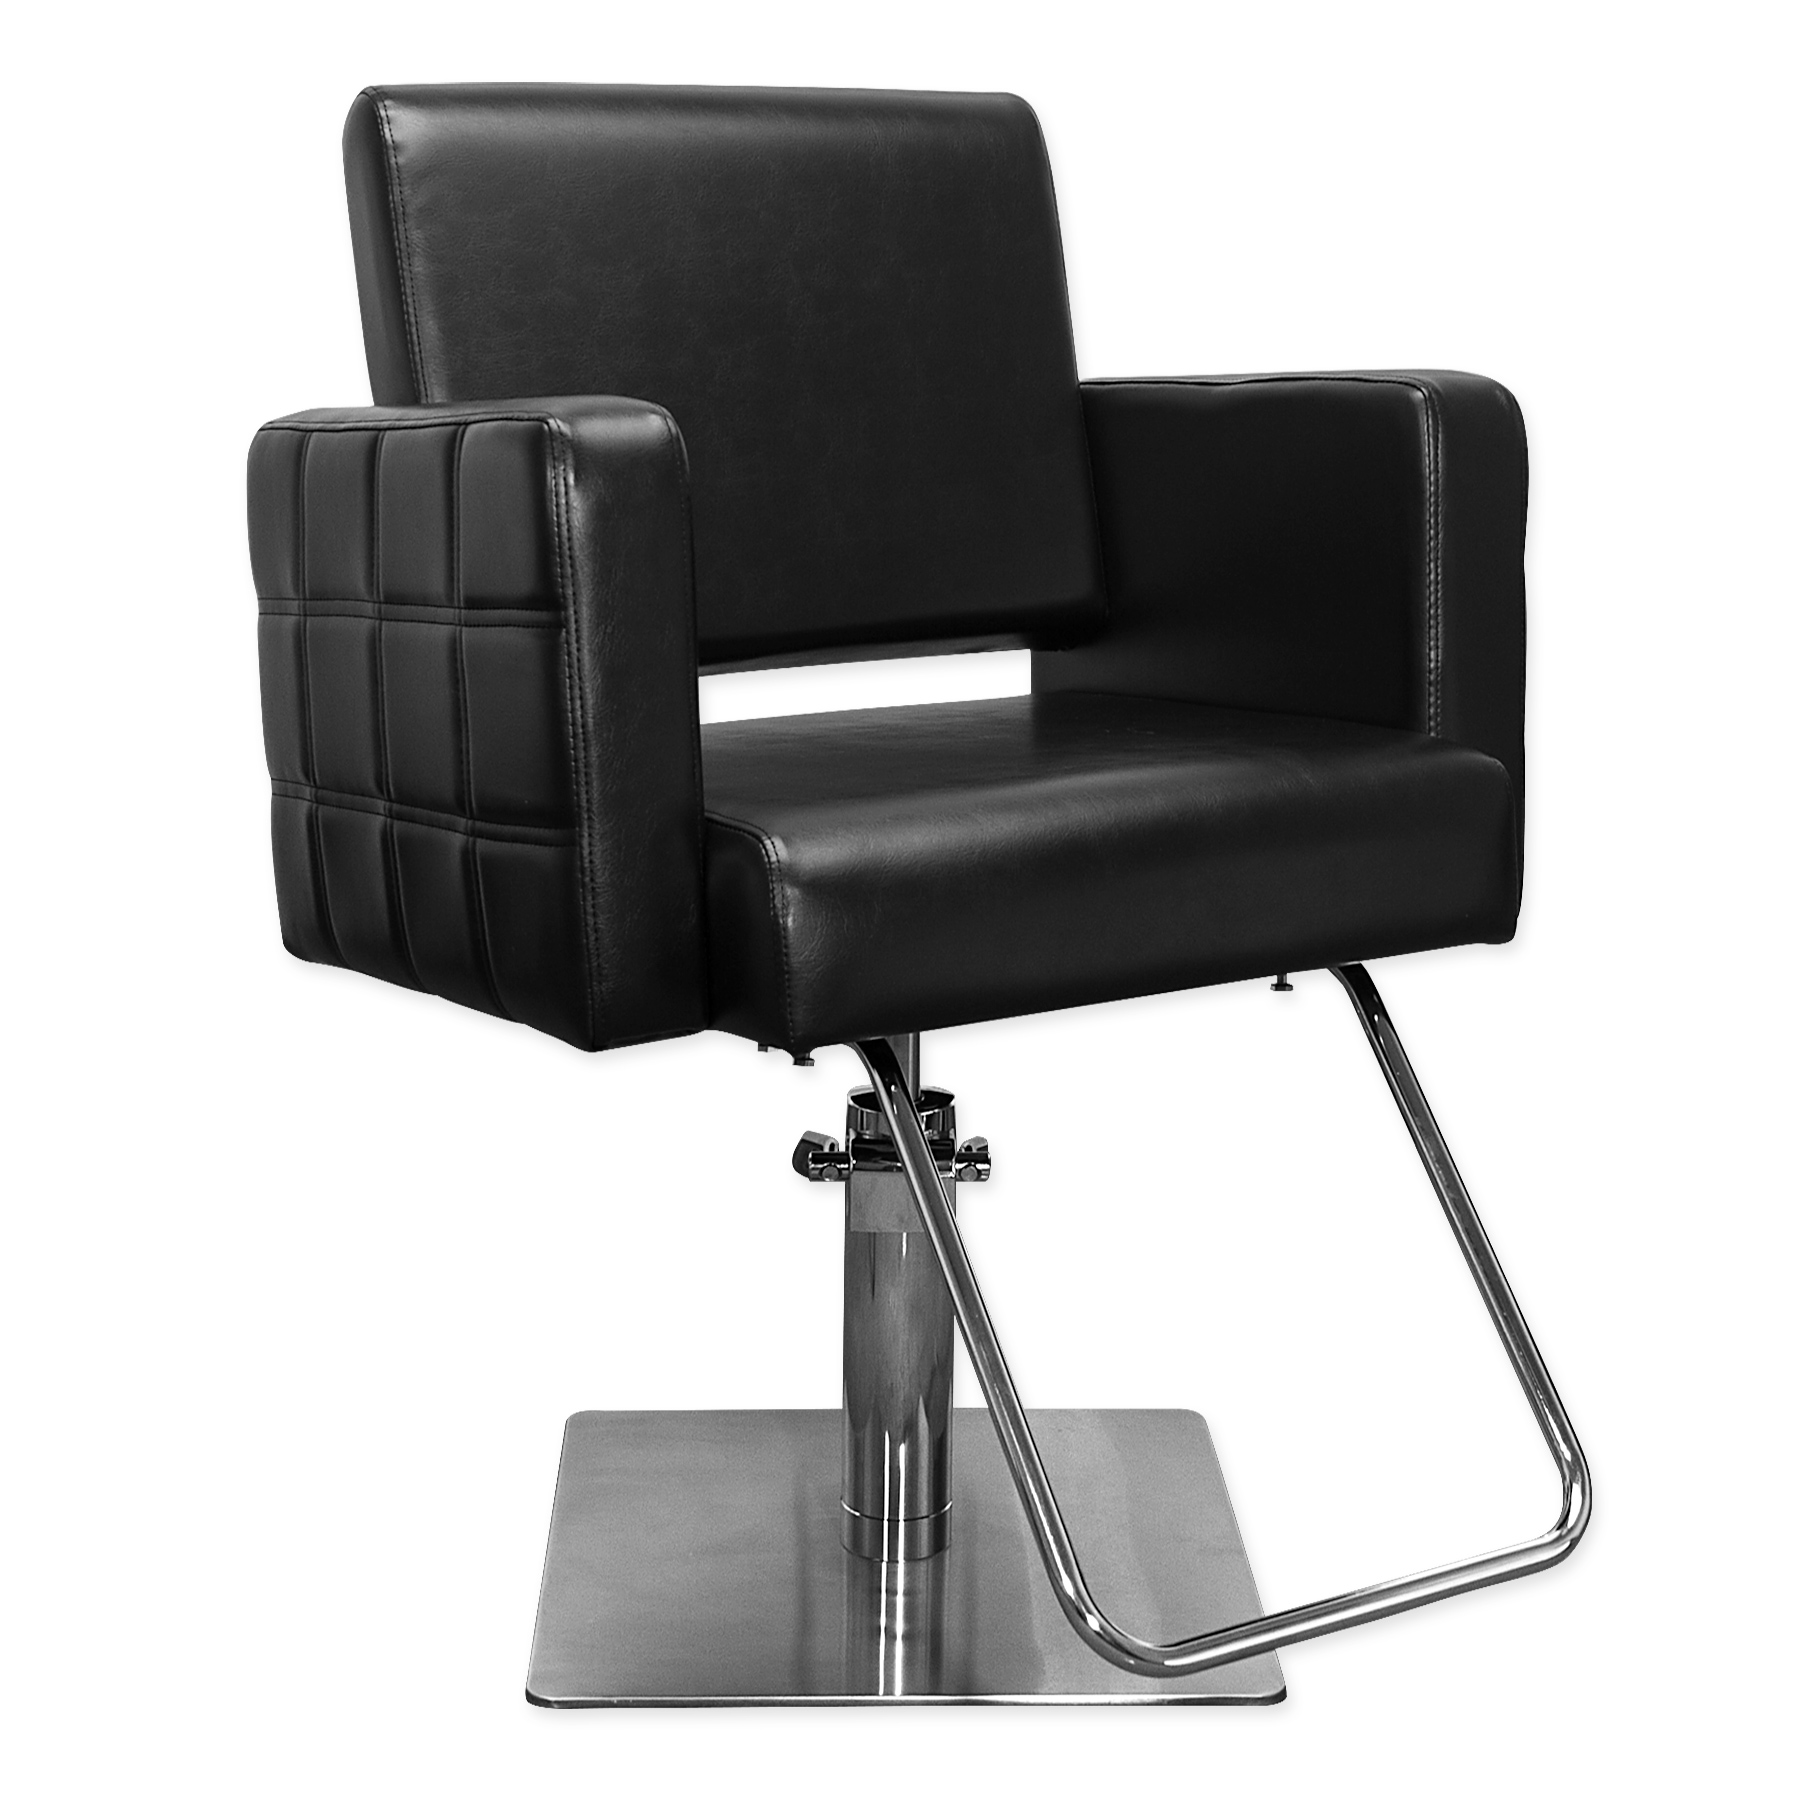 Havana Stylist Chair Quilted Black alternative product image 1